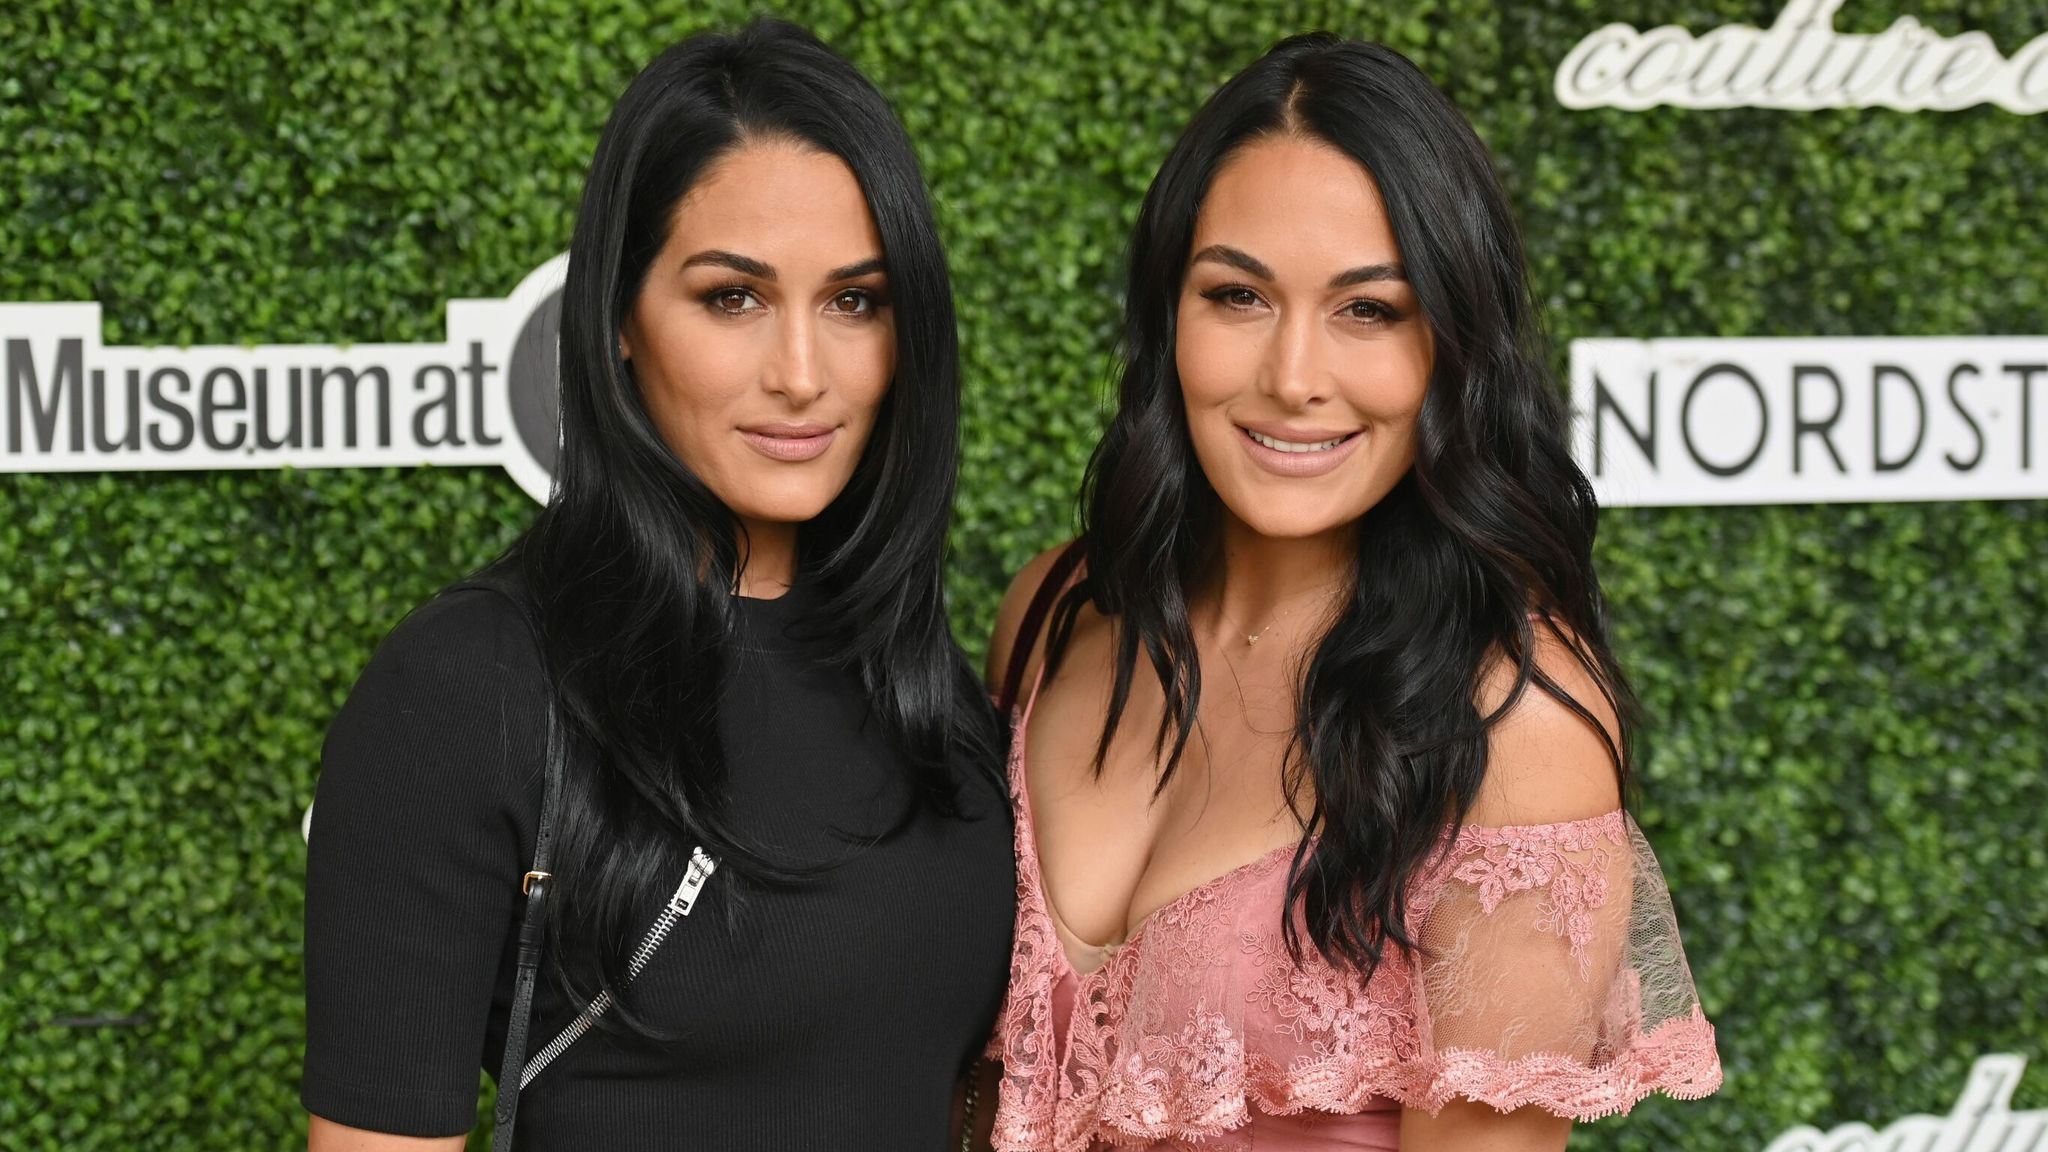 The Bella Twins: WWE stars Nikki and Brie Bella give birth just one day apart | Ents & Arts News | Sky News